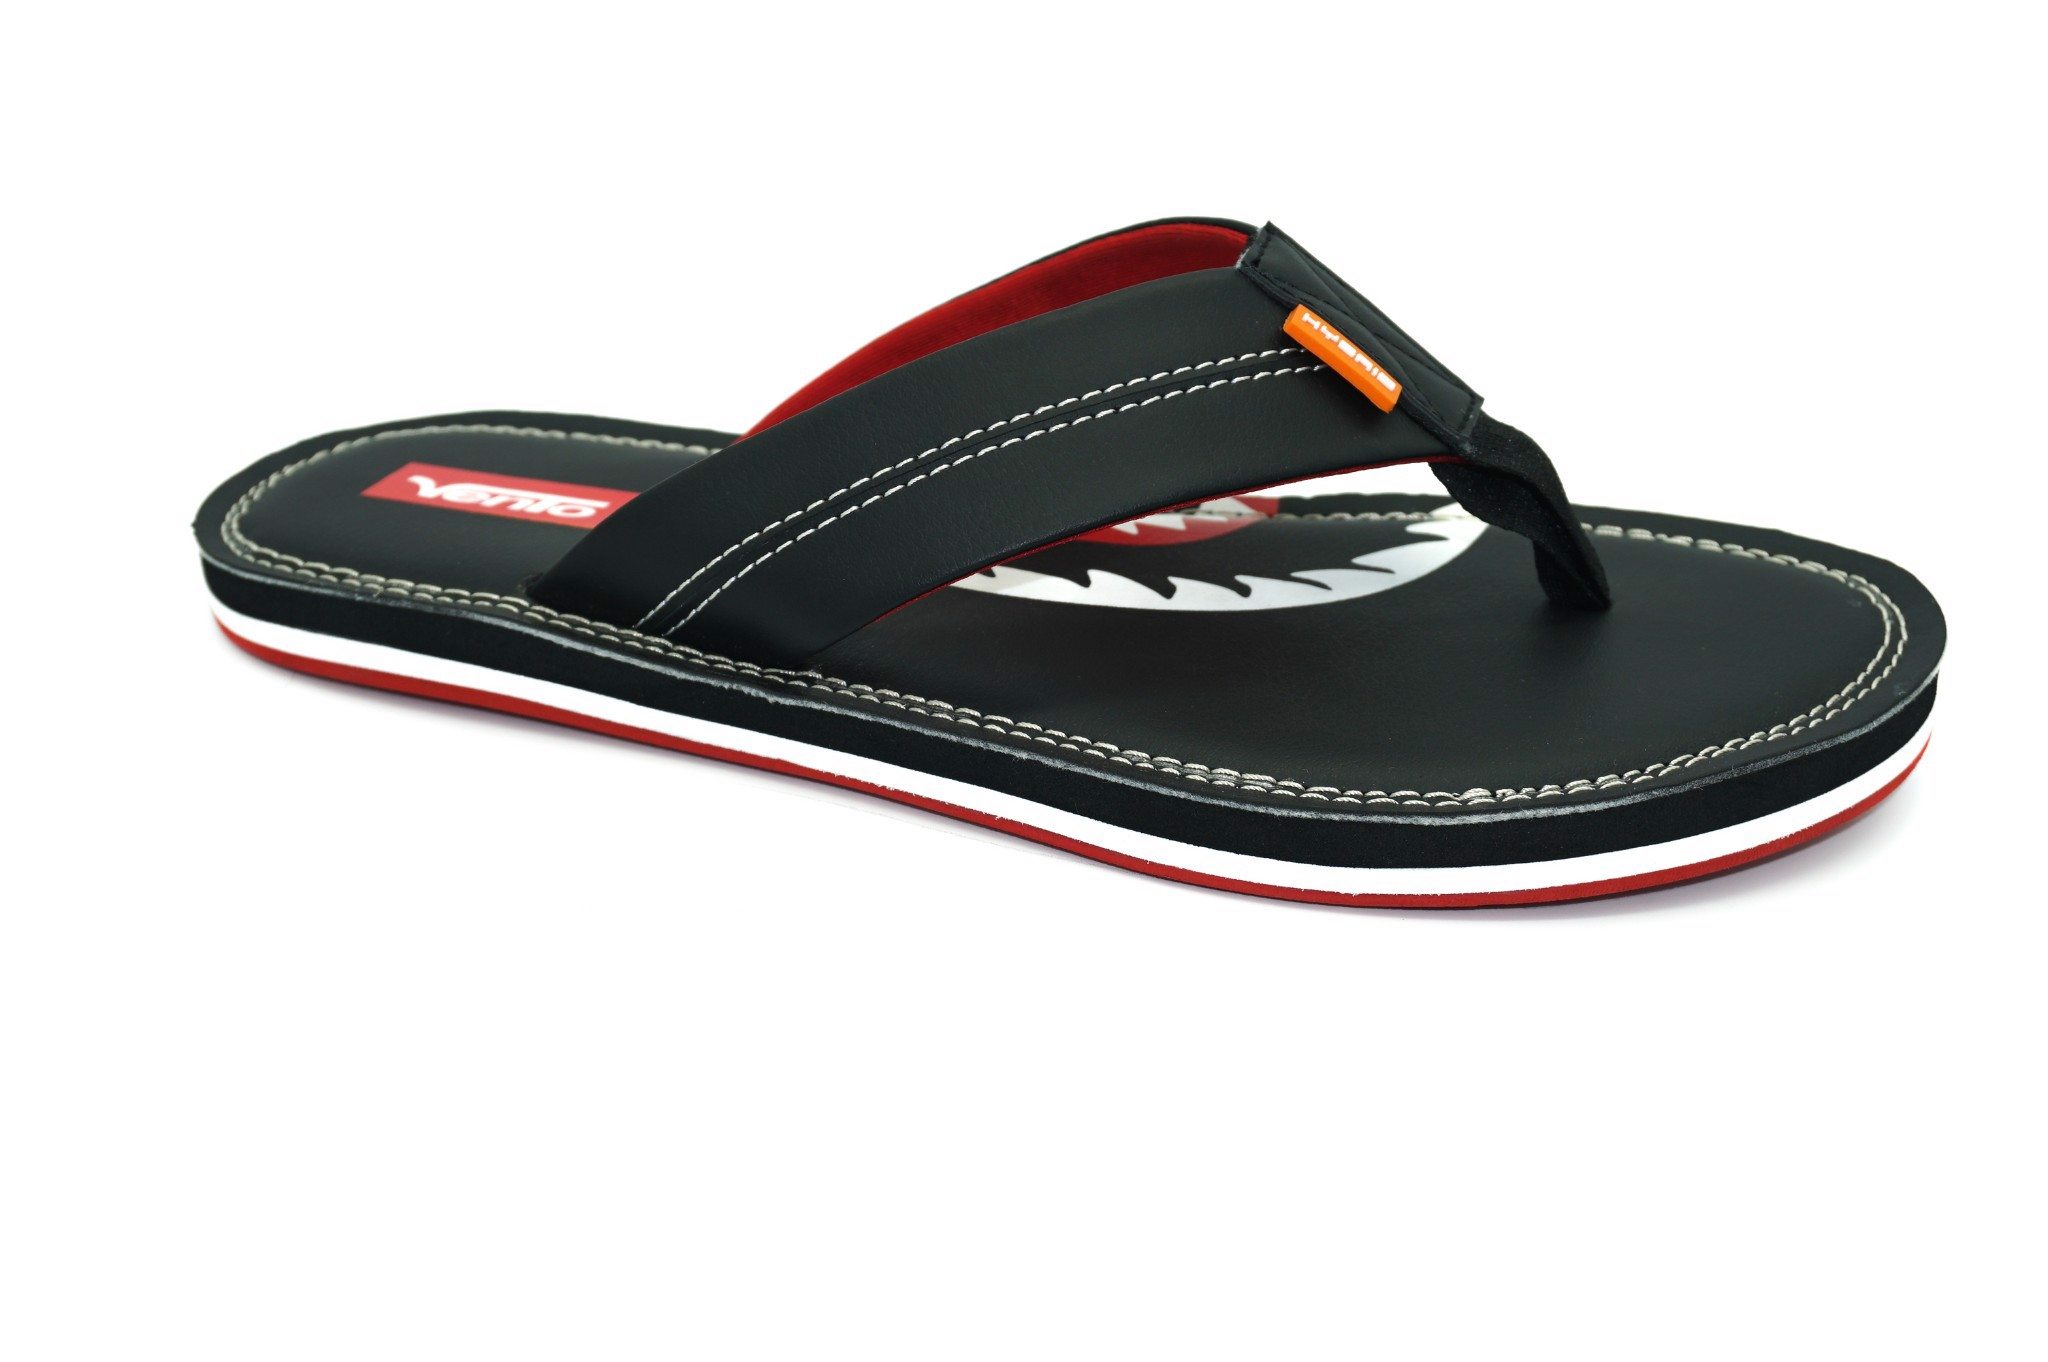 FF-0208 Black Red